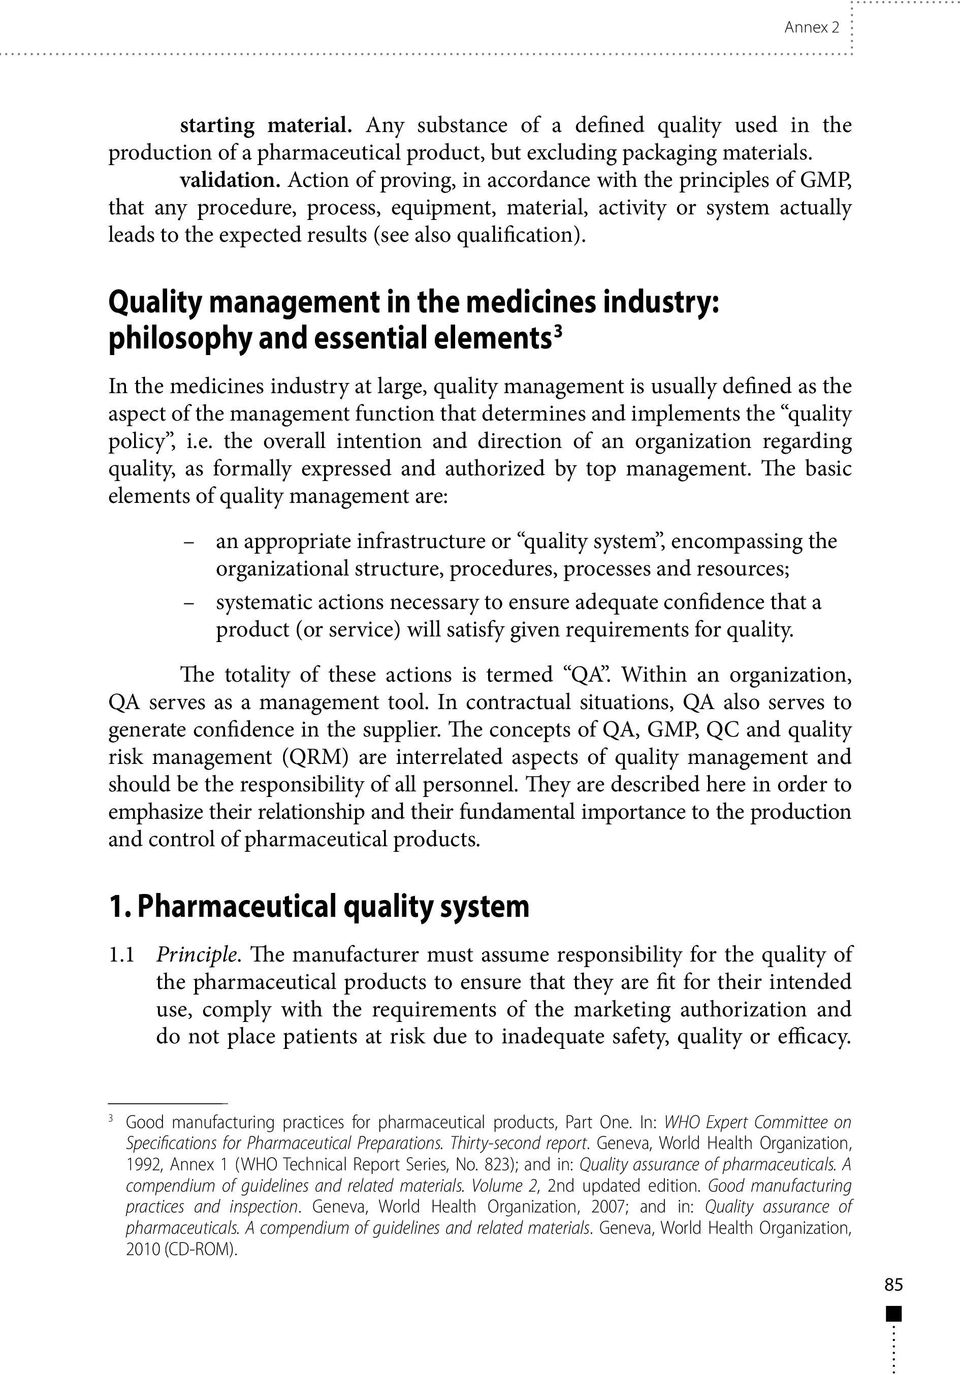 Quality management in the medicines industry: philosophy and essential elements 3 In the medicines industry at large, quality management is usually defined as the aspect of the management function